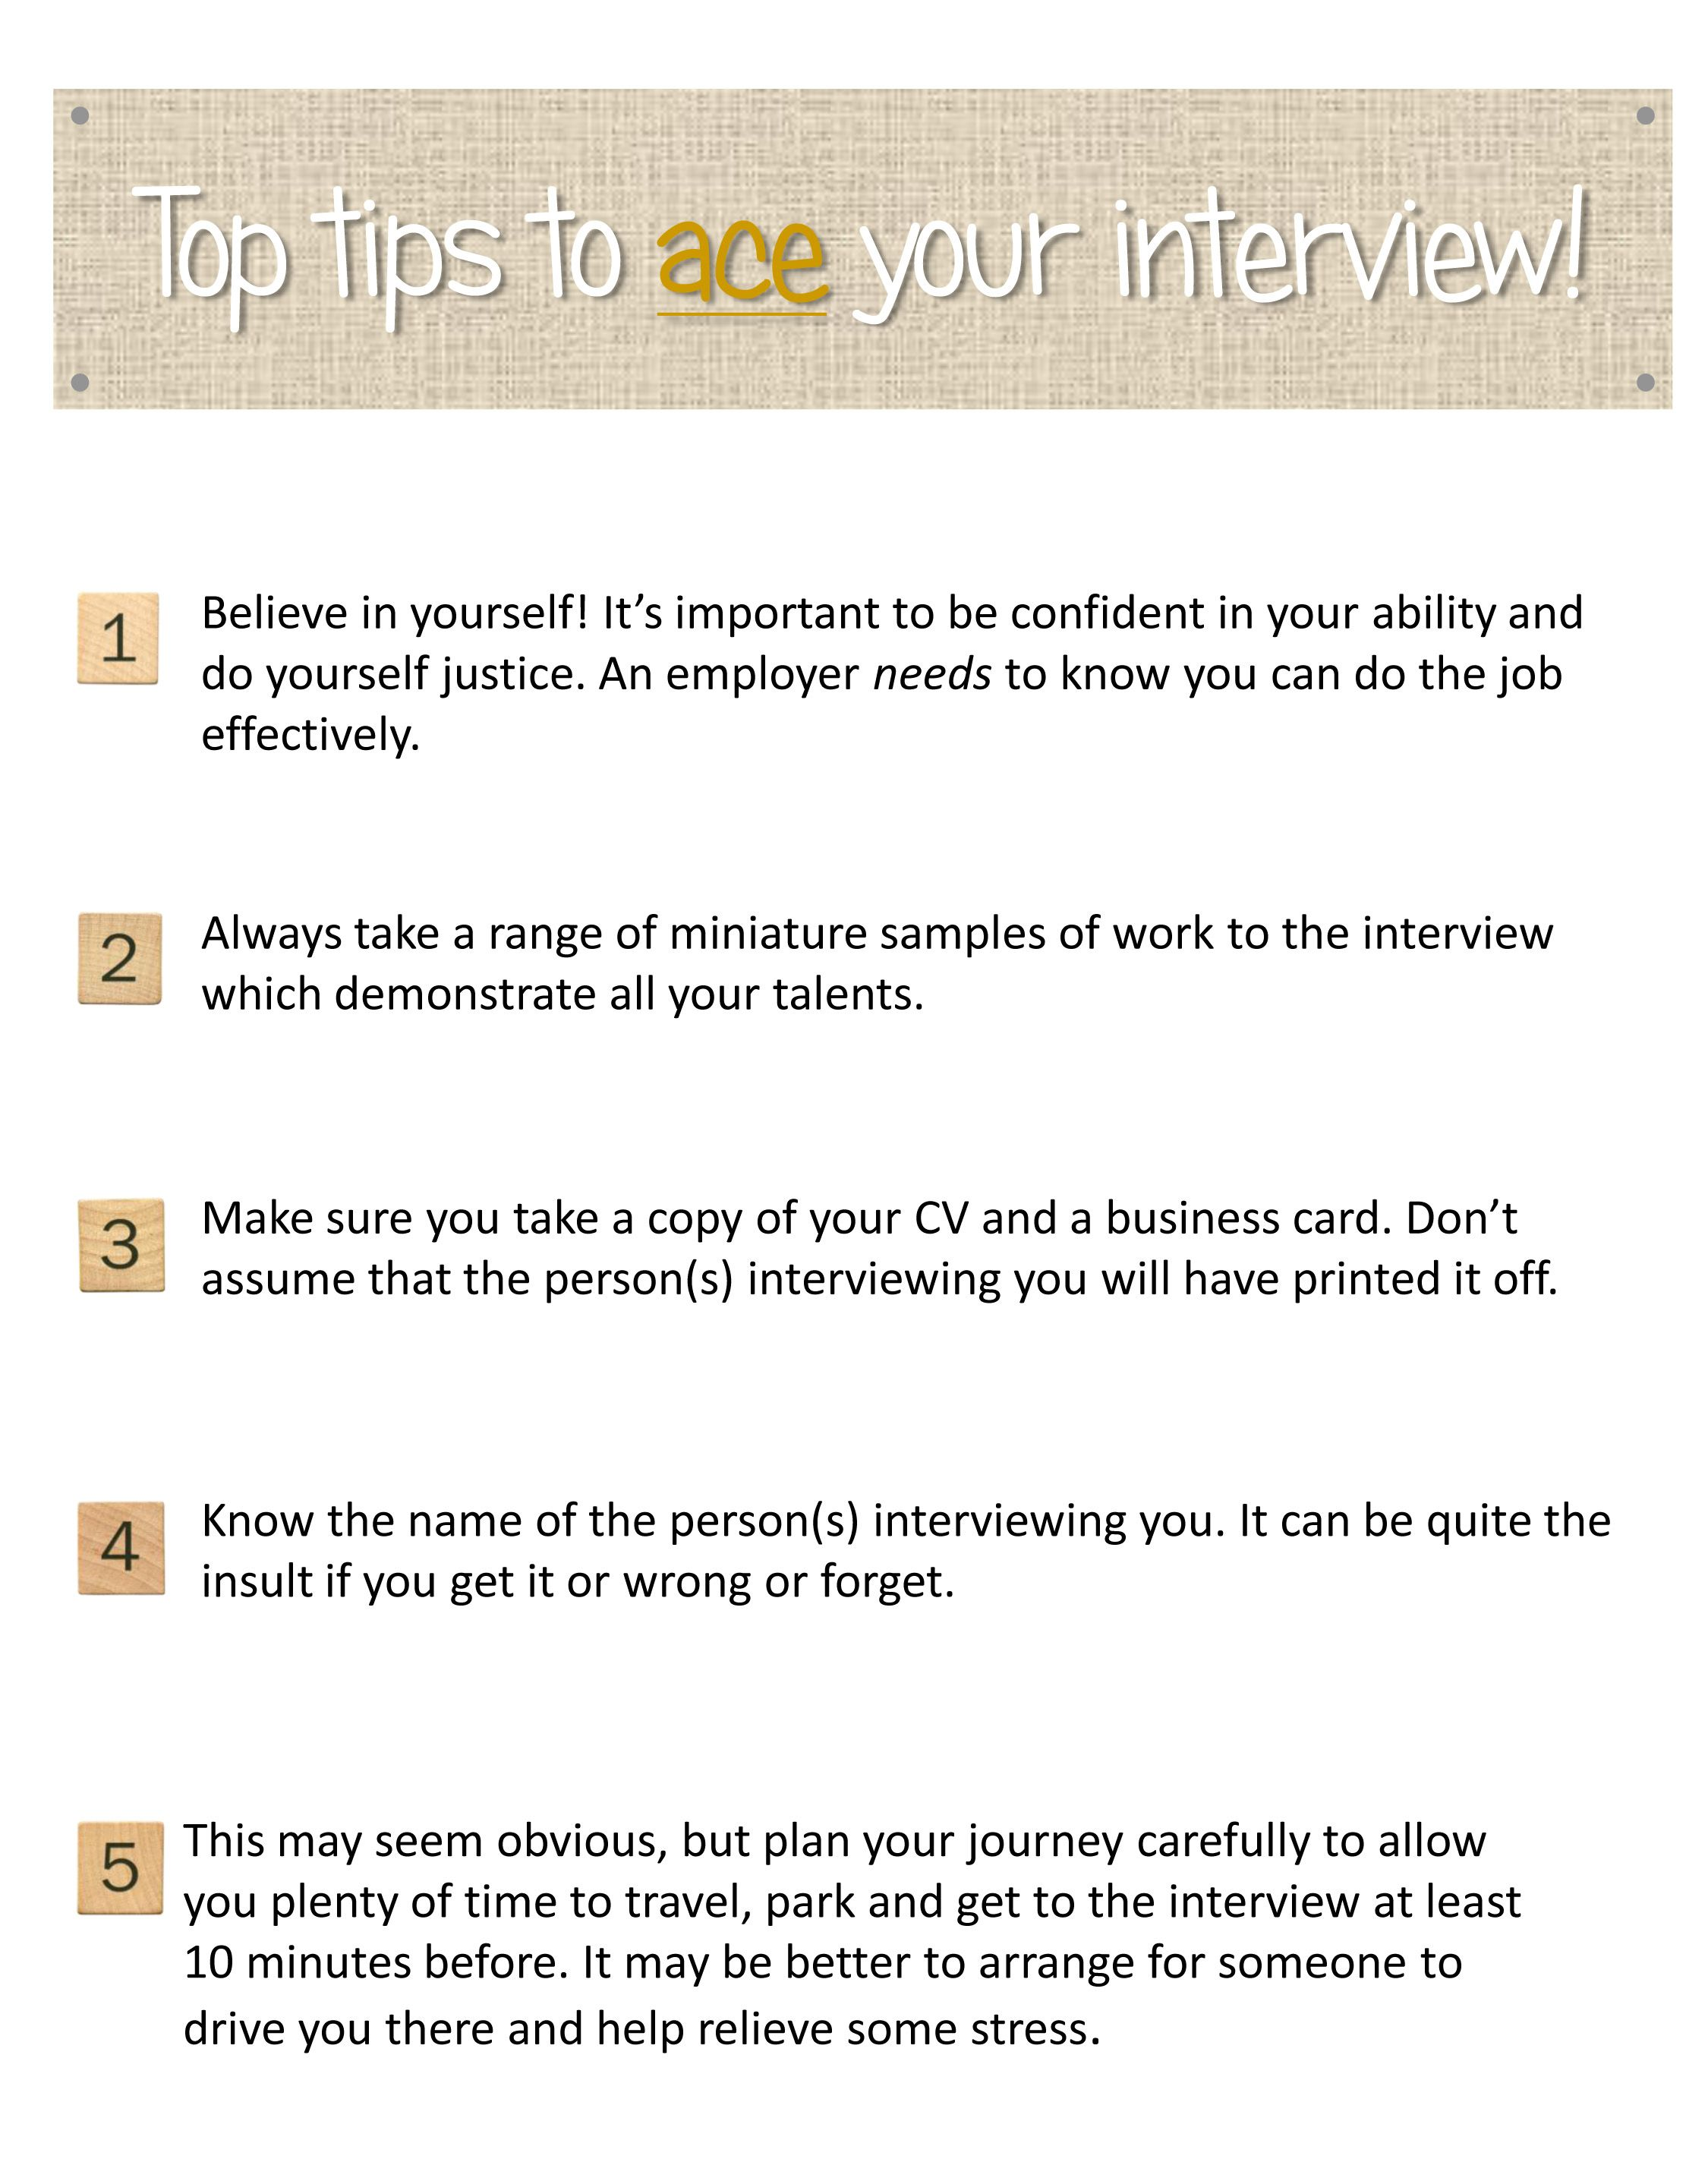 17 best images about interview tips interview 17 best images about interview tips interview search and angel